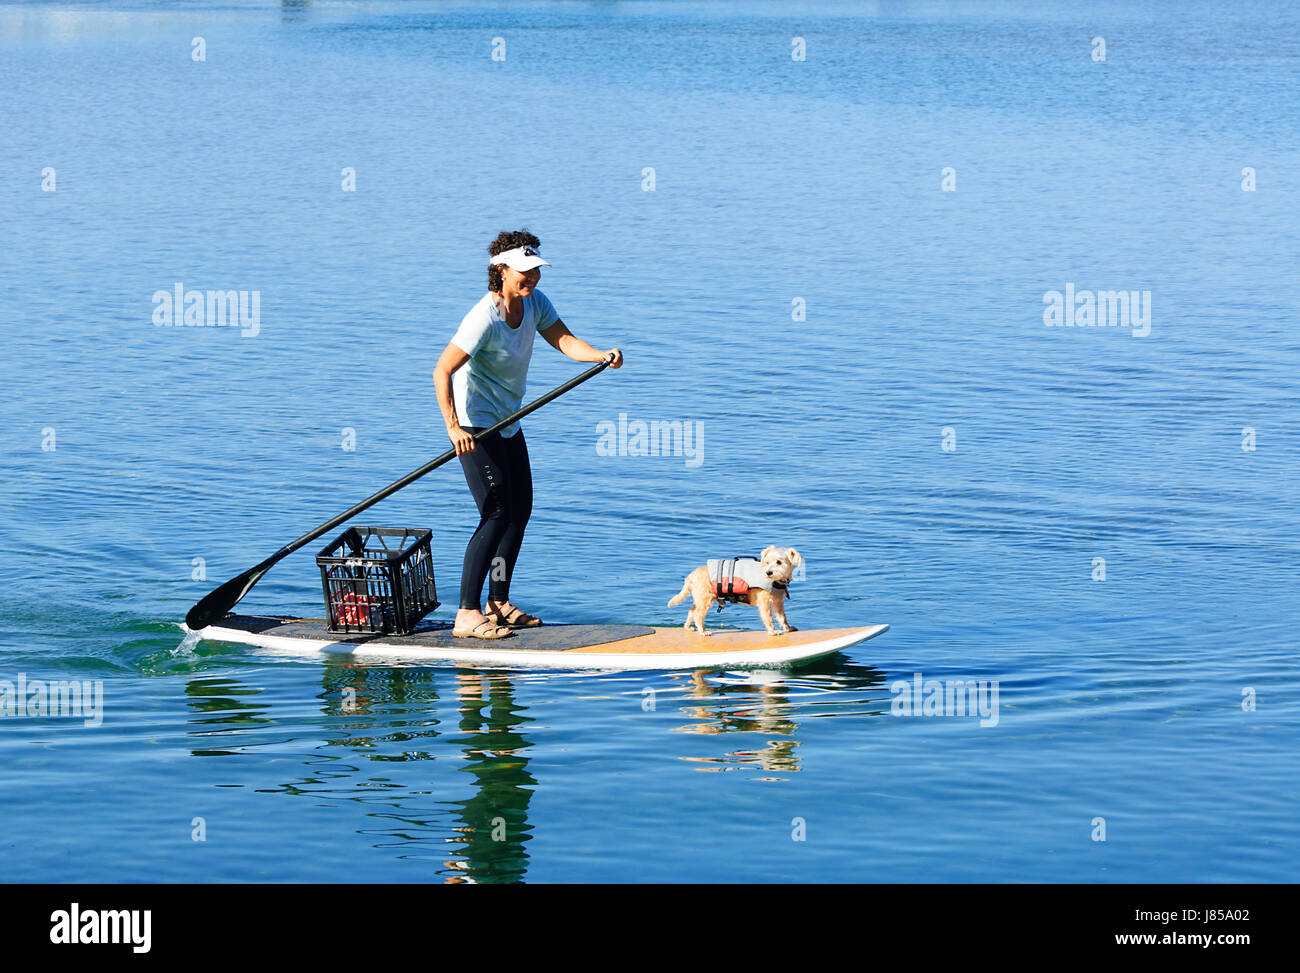 Young woman and a white dog wearing a lifejacket on a stand up paddleboard - Stock Image